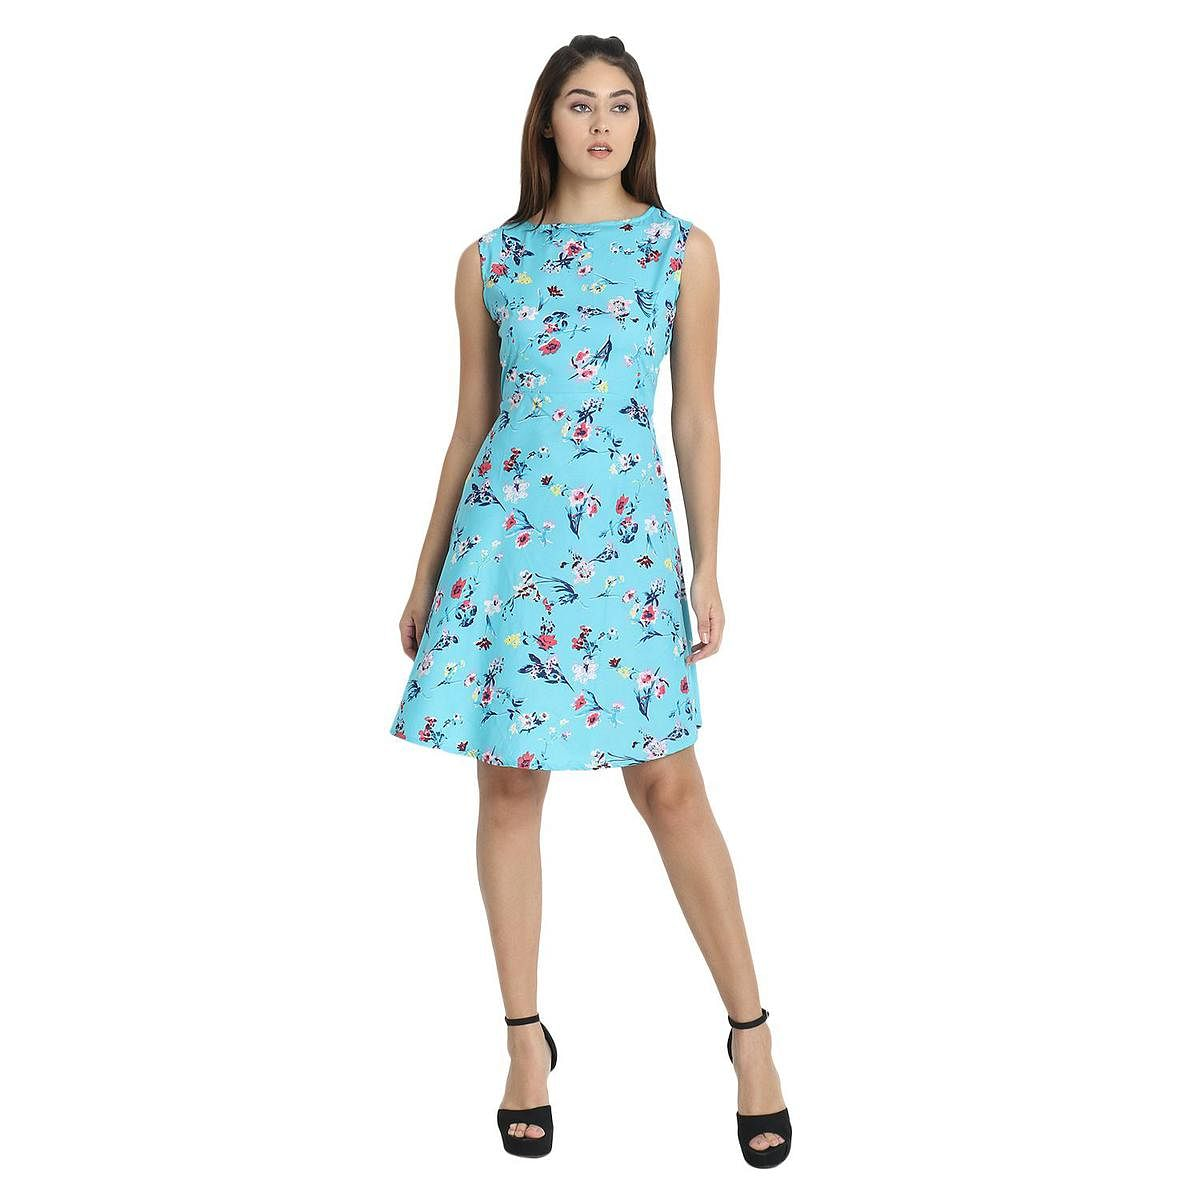 OMADAM - Blue Colored Casual Floral Printed Crepe Dress